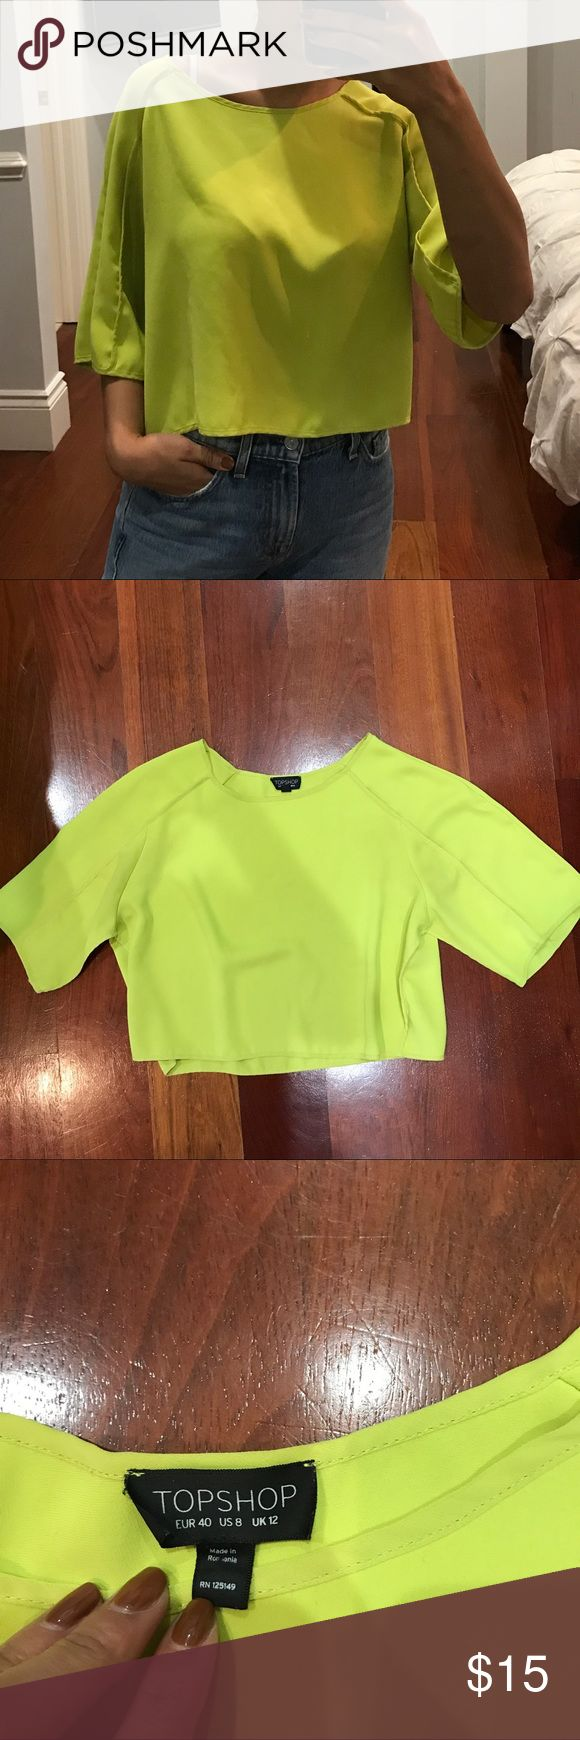 Neon top shop cropped blouse Slightly cropped boxy fit blouse. No damage Topshop Tops Blouses